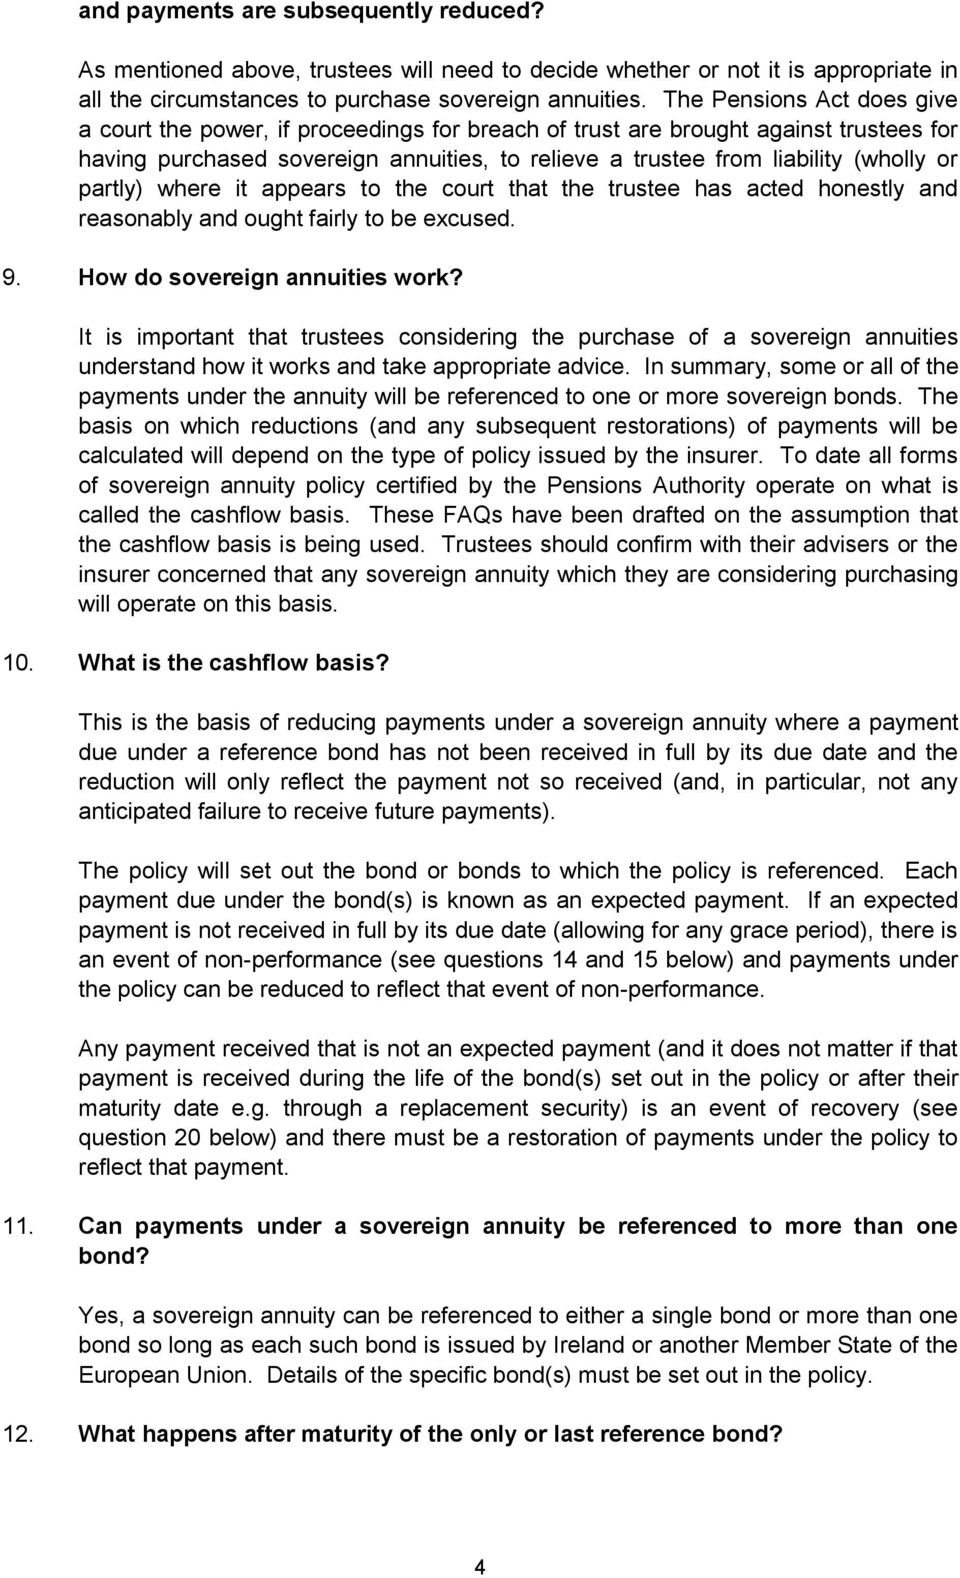 partly) where it appears to the court that the trustee has acted honestly and reasonably and ought fairly to be excused. 9. How do sovereign annuities work?